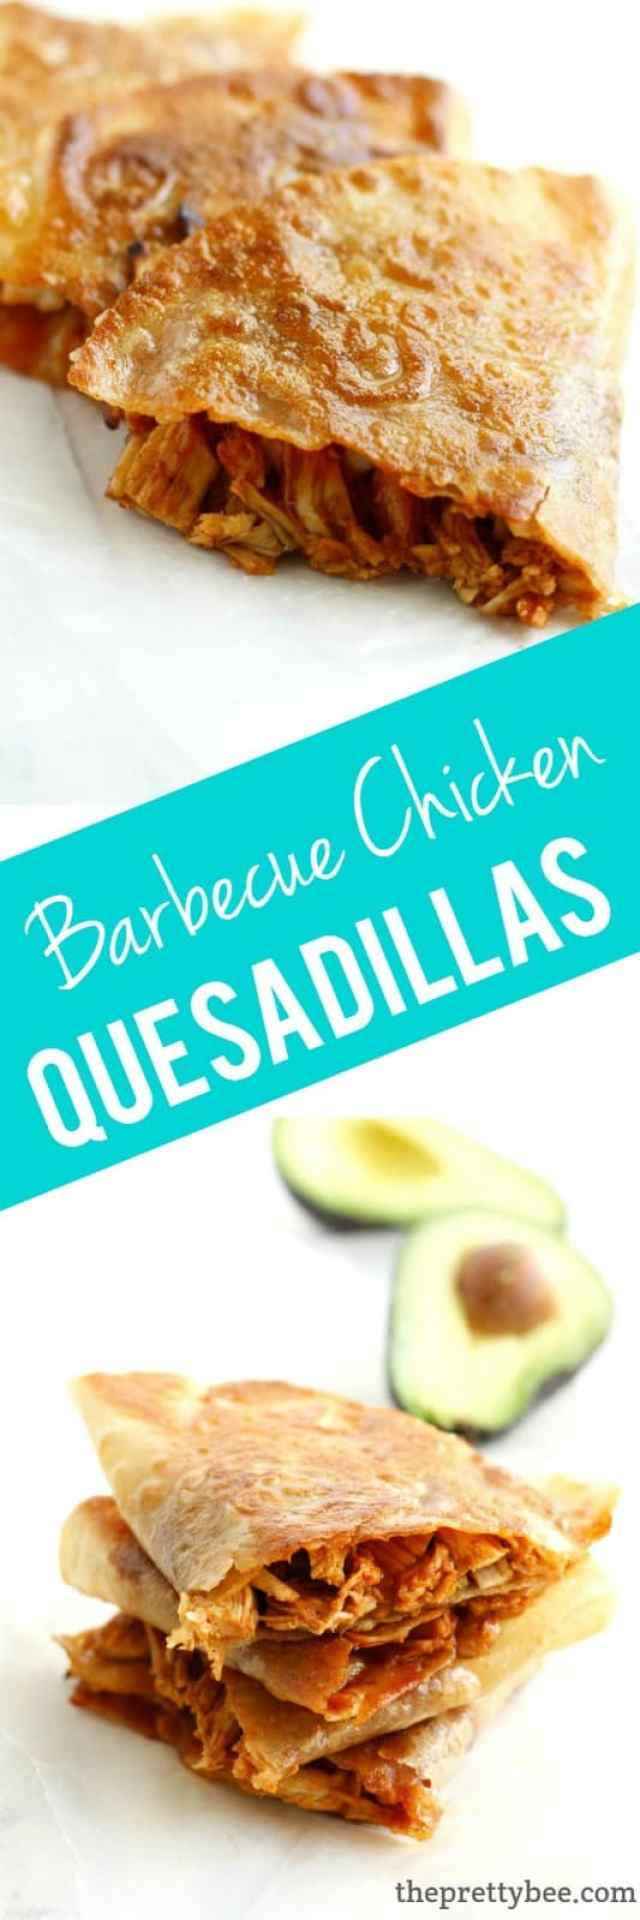 Crispy, melty, delicious barbecue chicken quesadillas. This dinner is perfect for busy nights!